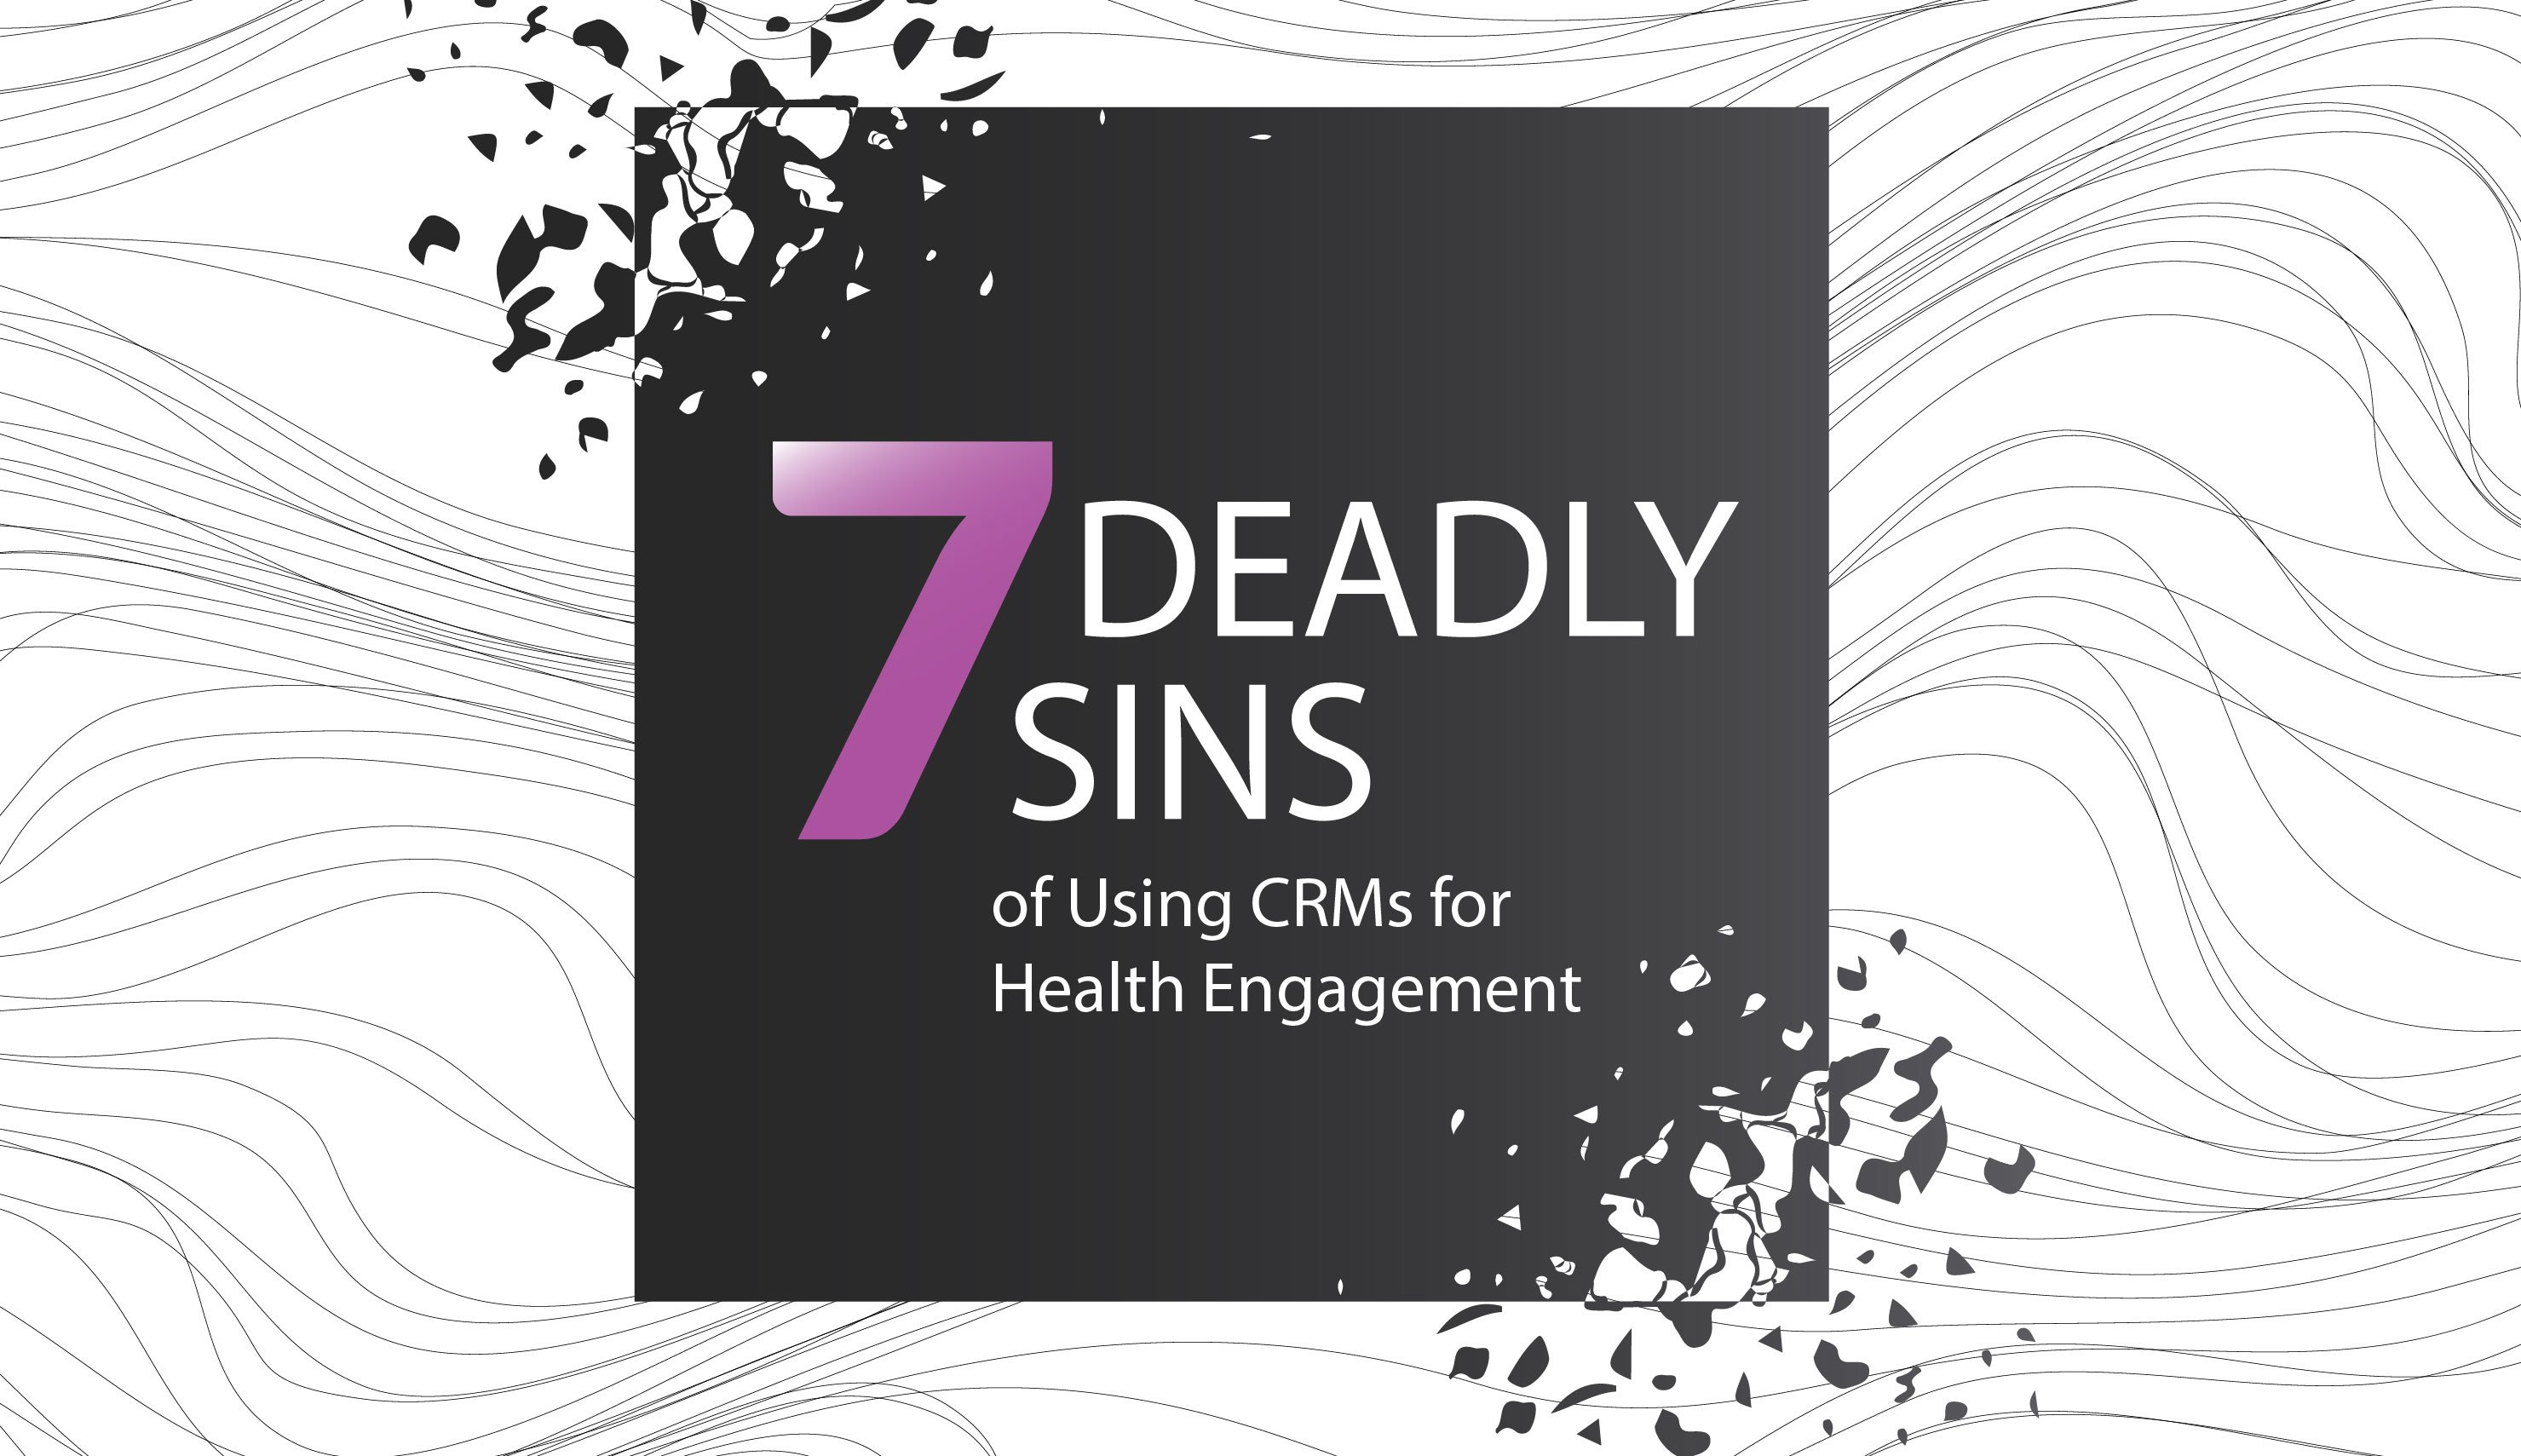 7 Deadly Sins of Using CRMs for Health Engagement